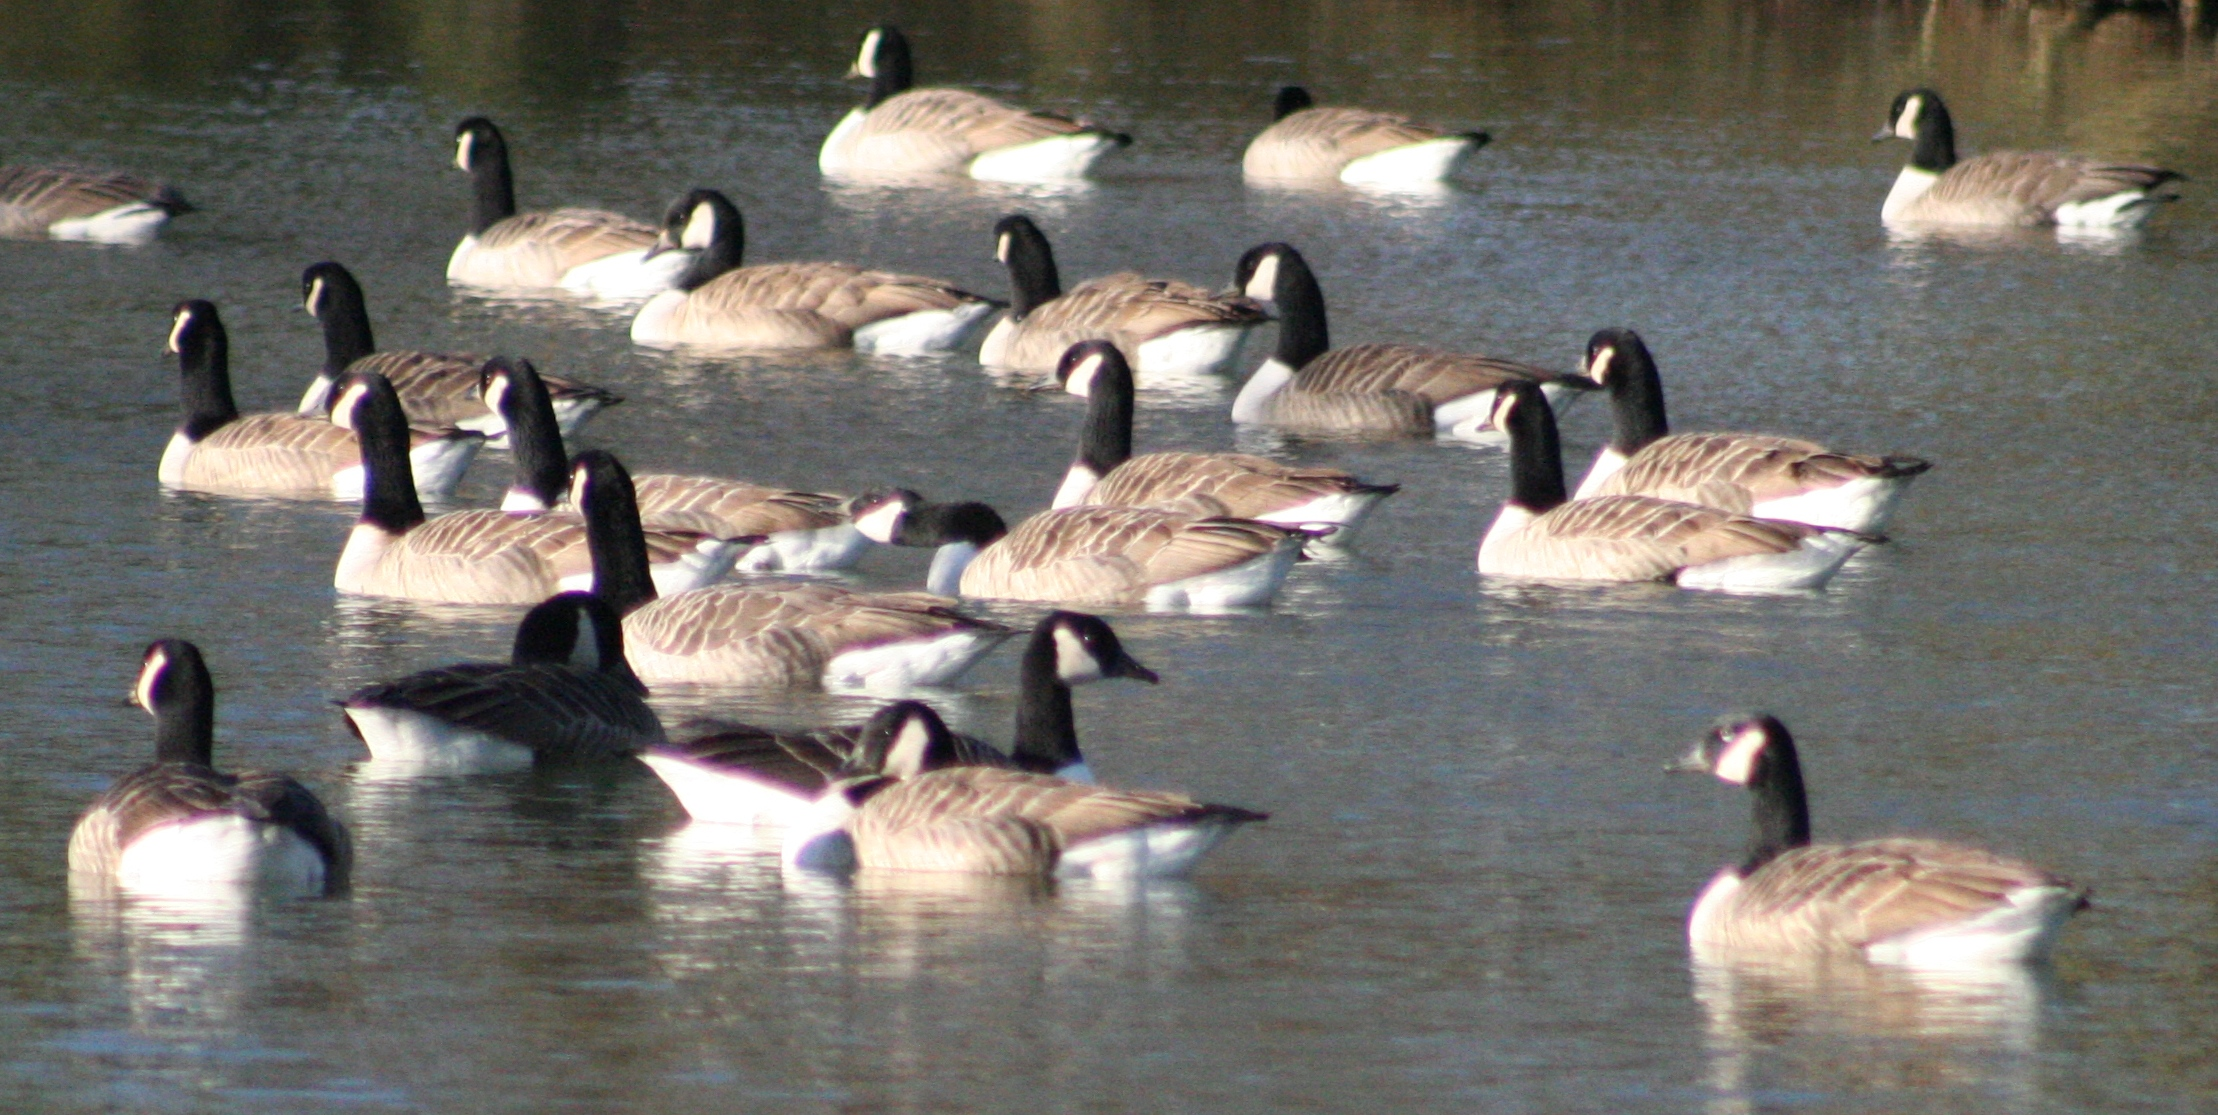 A flock of ducks on a body of water